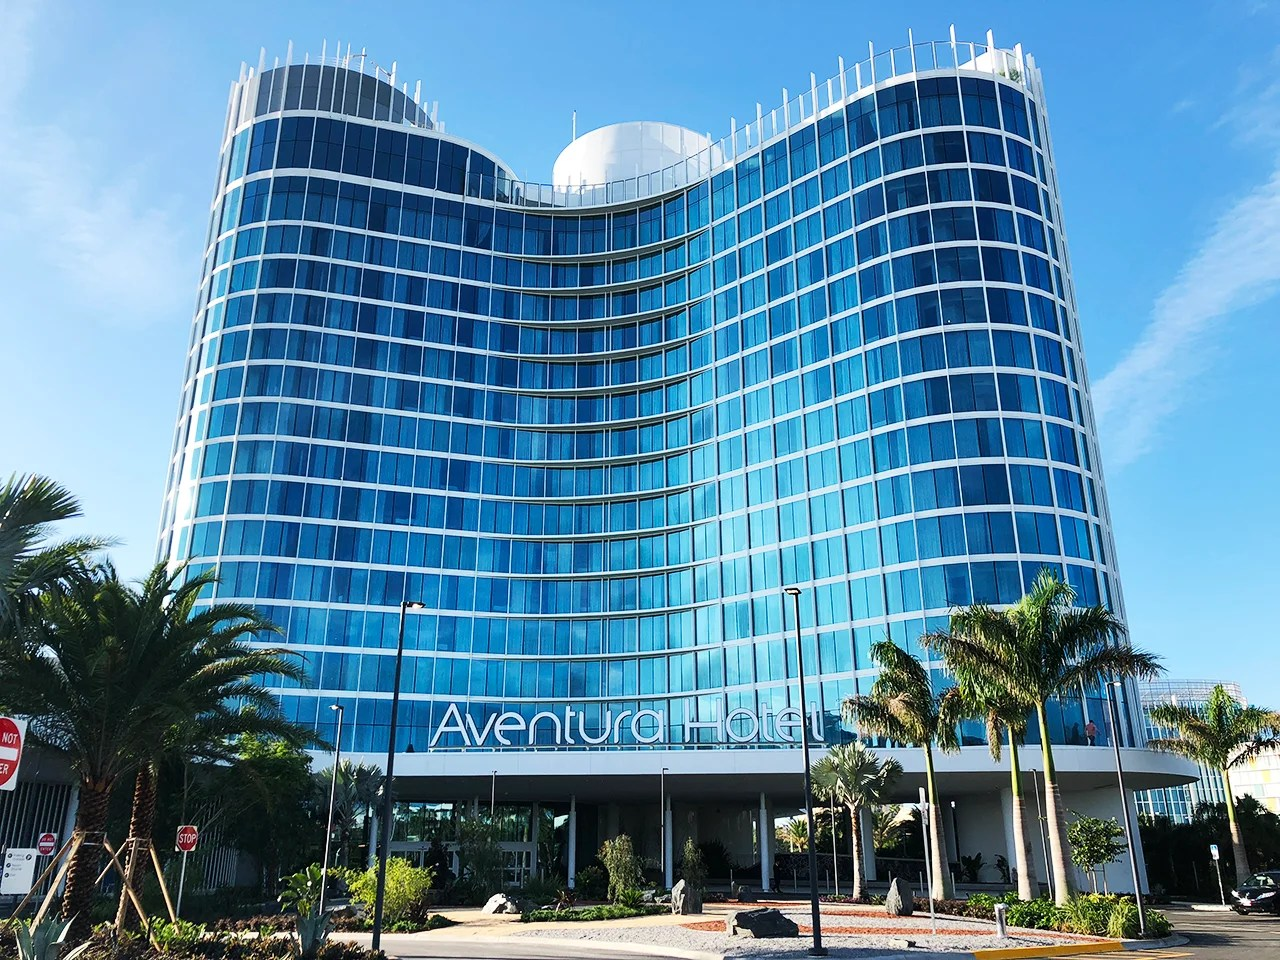 Hotels Near Universal Studios >> A Review Of The Newest Universal Orlando Resort The Aventura Hotel